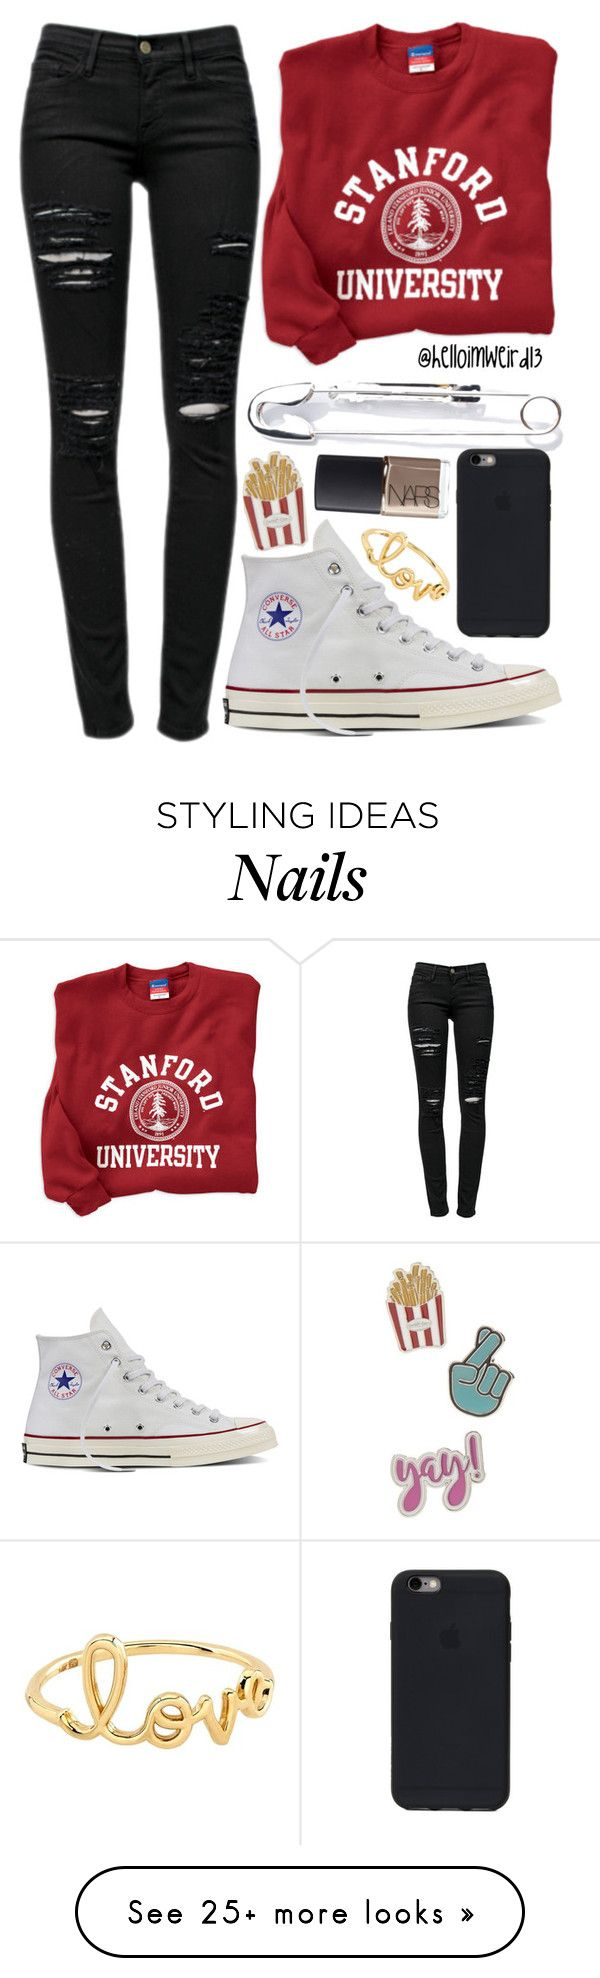 """""""shine bright"""" by helloimweird13 on Polyvore featuring Frame, Cheap Monday, Converse, Red Camel, NARS Cosmetics and Sydney Evan"""